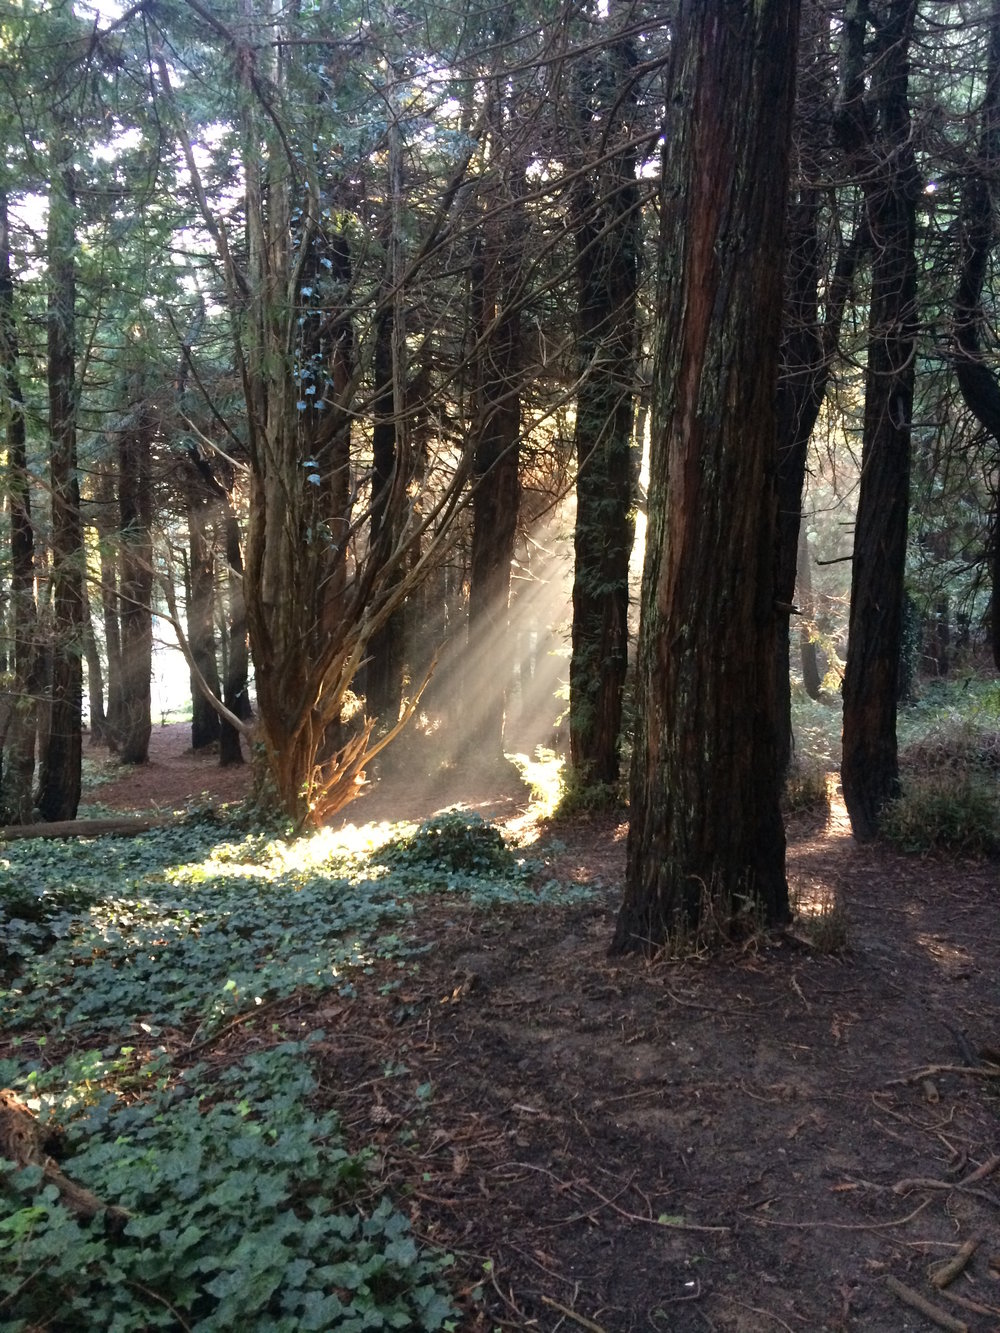 """Breakthrough"" John McLaren Park, San Francisco, California Taken by my daughter on January 14, 2017 at 8:30am Thank you, Alicia, for sharing this beautiful photo from your walk this morning  in this magical place. It is the perfect analogy for the awareness insights that so inspire me with my amazing clients."